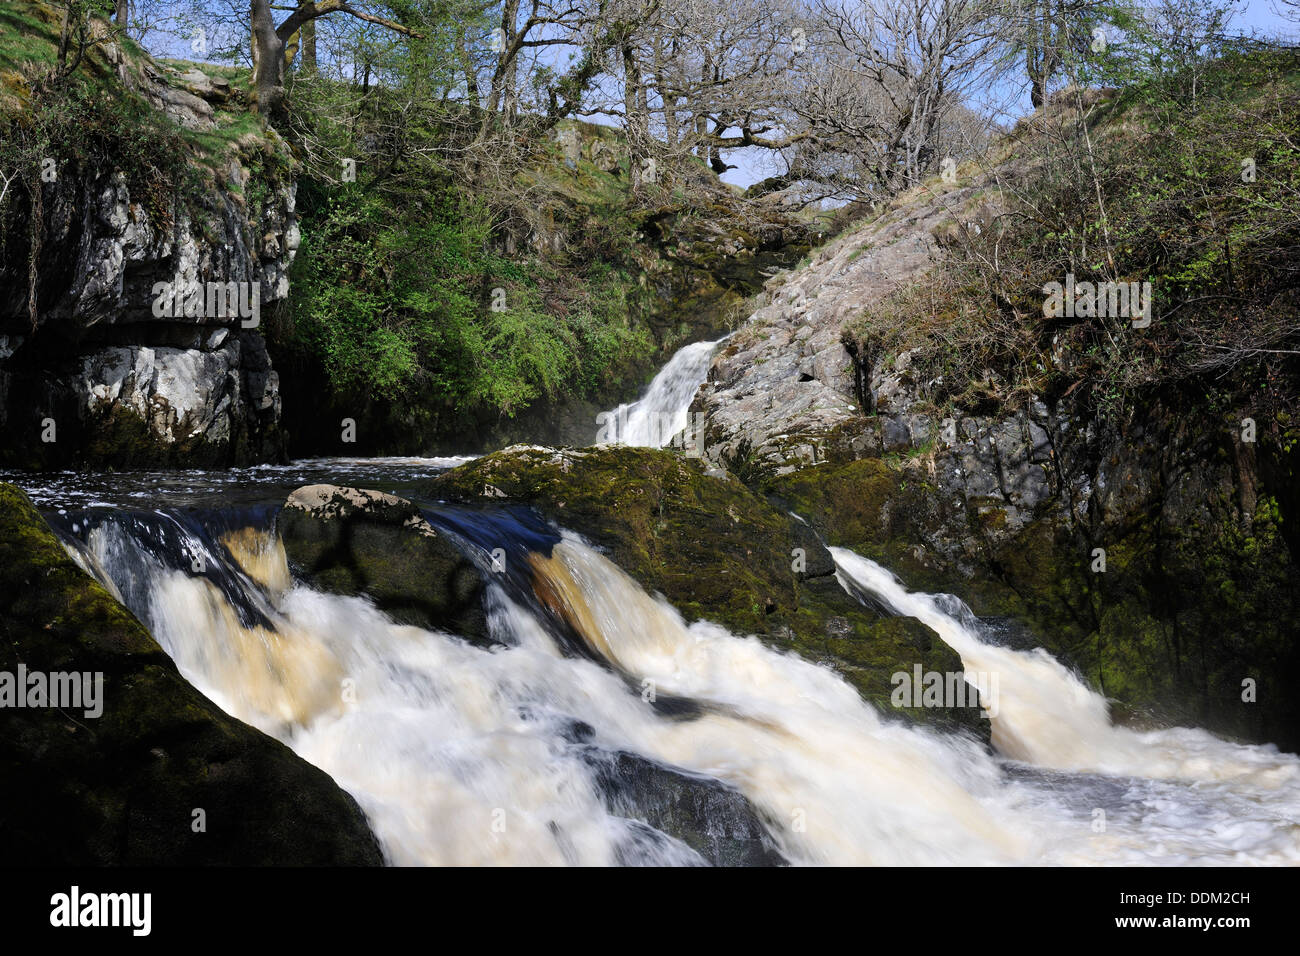 Early Spring torrent over 'Triple Spout' waterfall, Ingleton, Yorkshire, England - Stock Image